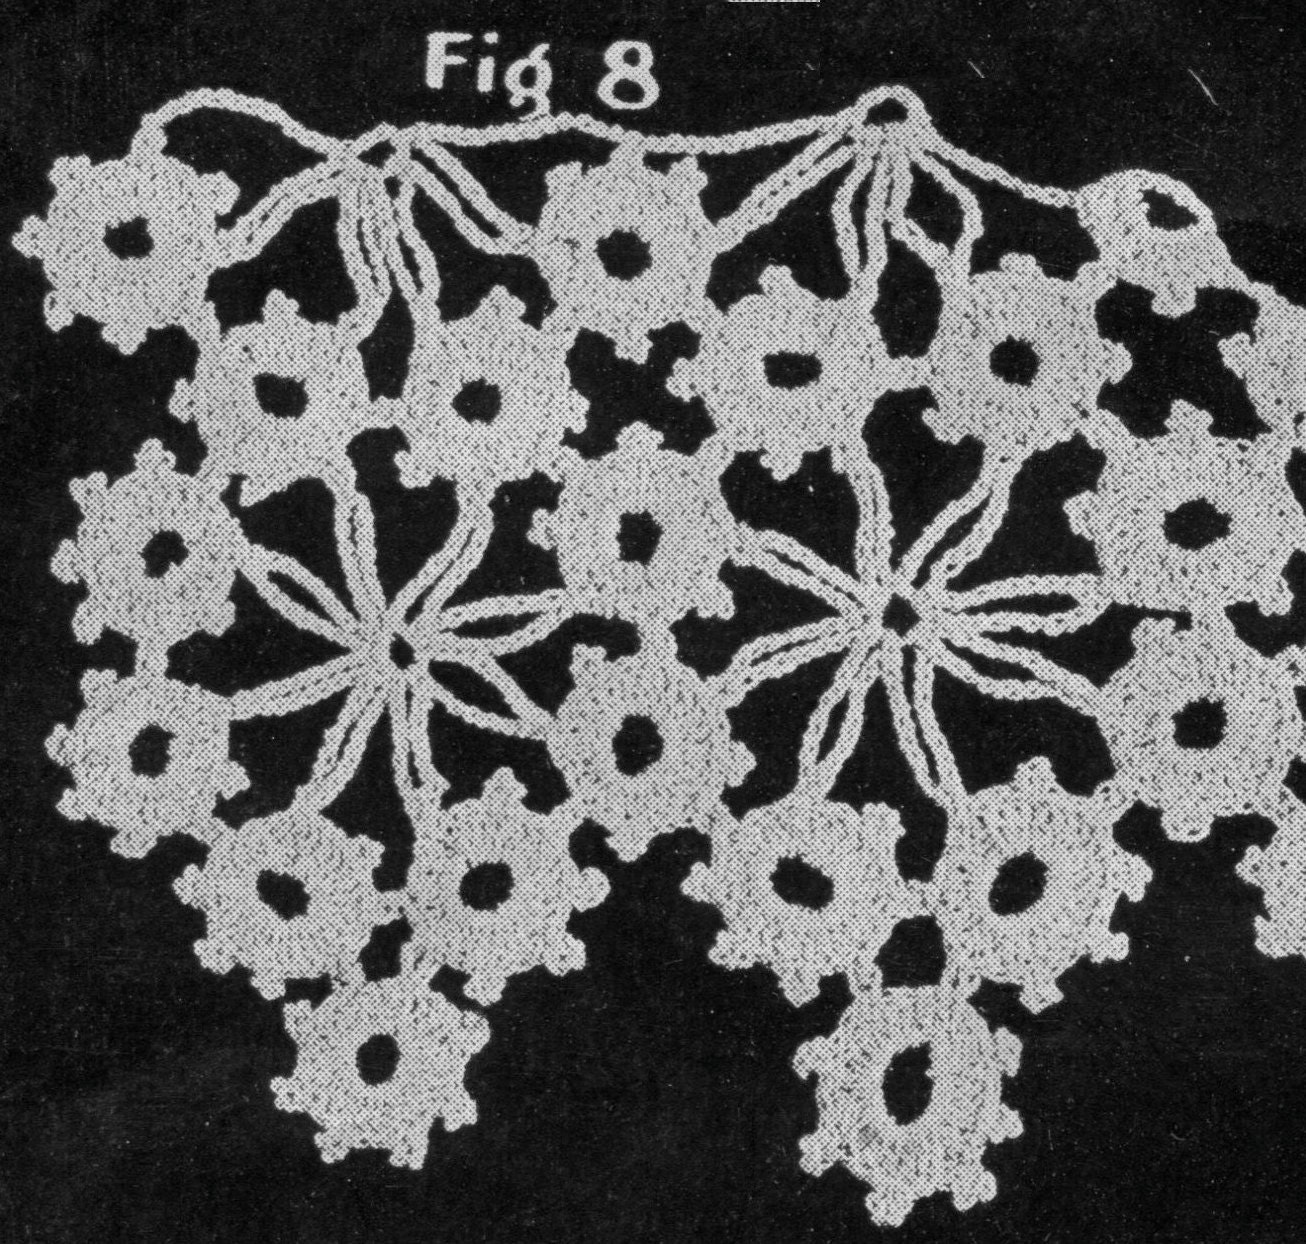 Briar Rose Crochet Lace Pattern Booklet Pdf From Justatetch On Etsy